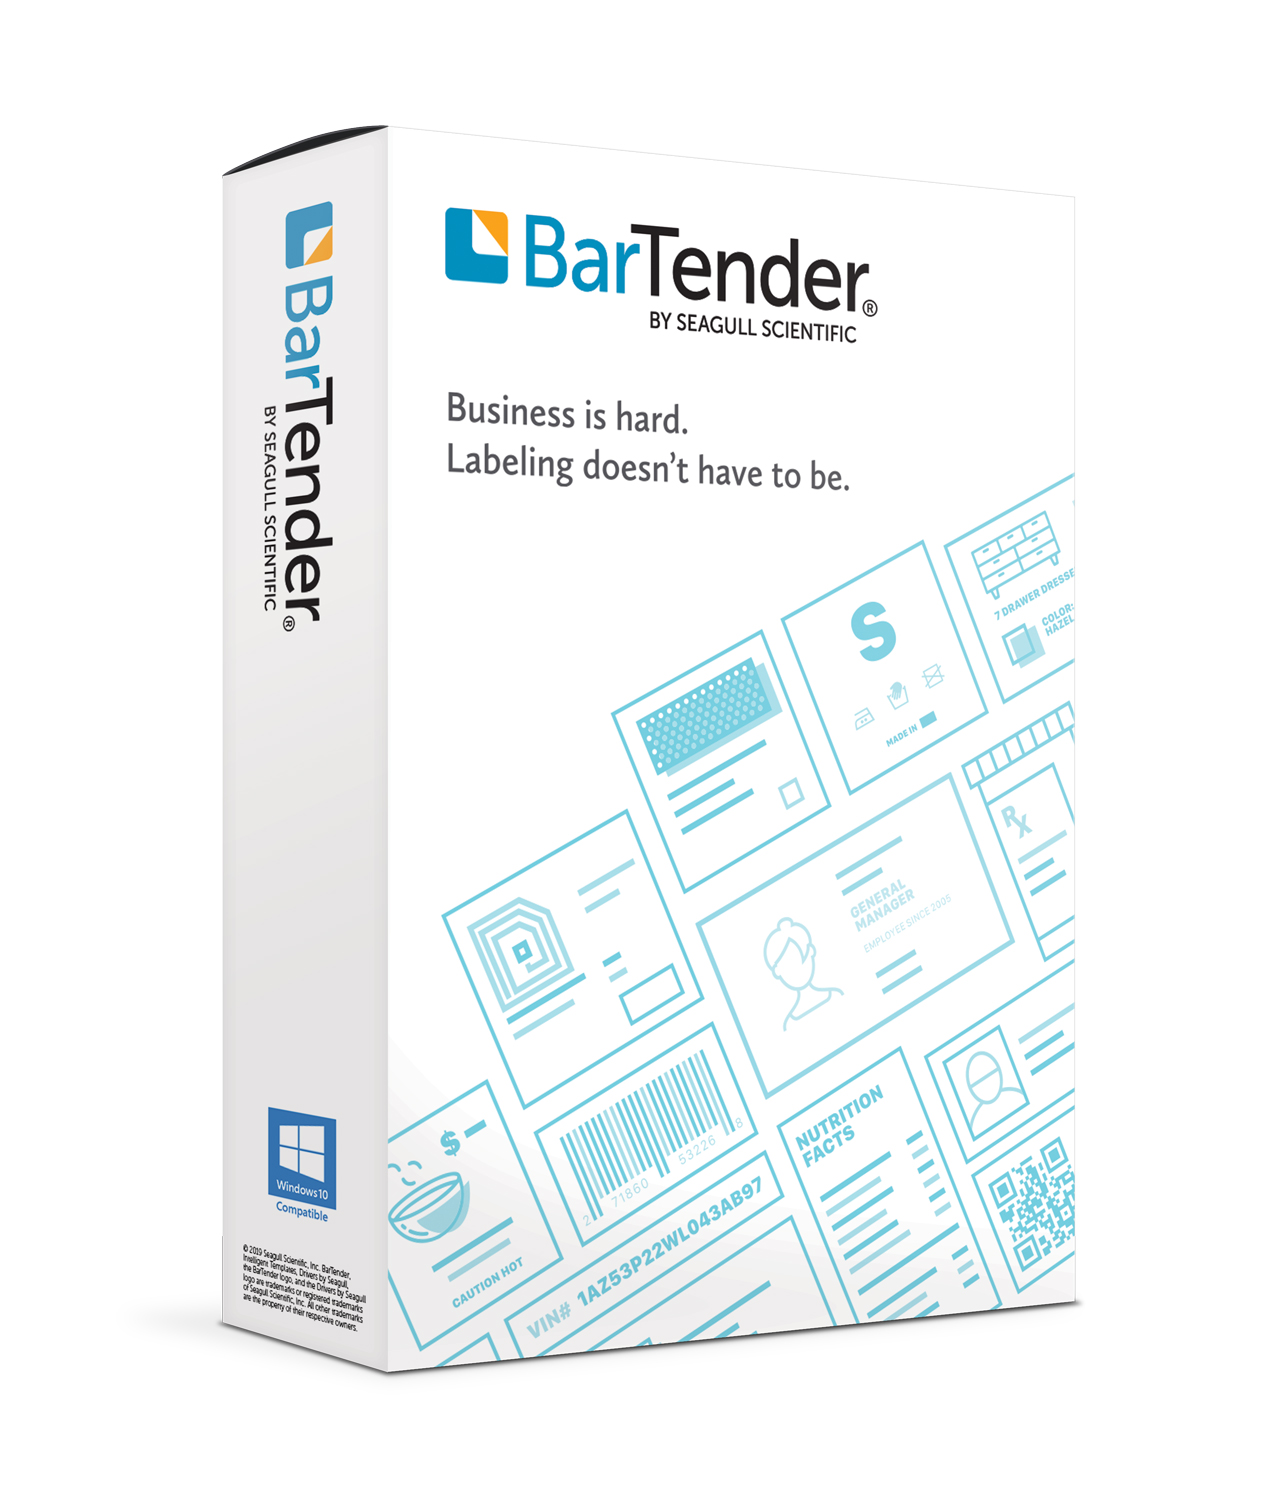 Bartender 2019 Label Design Software Download Your Free Copy Of The Software From Our Website